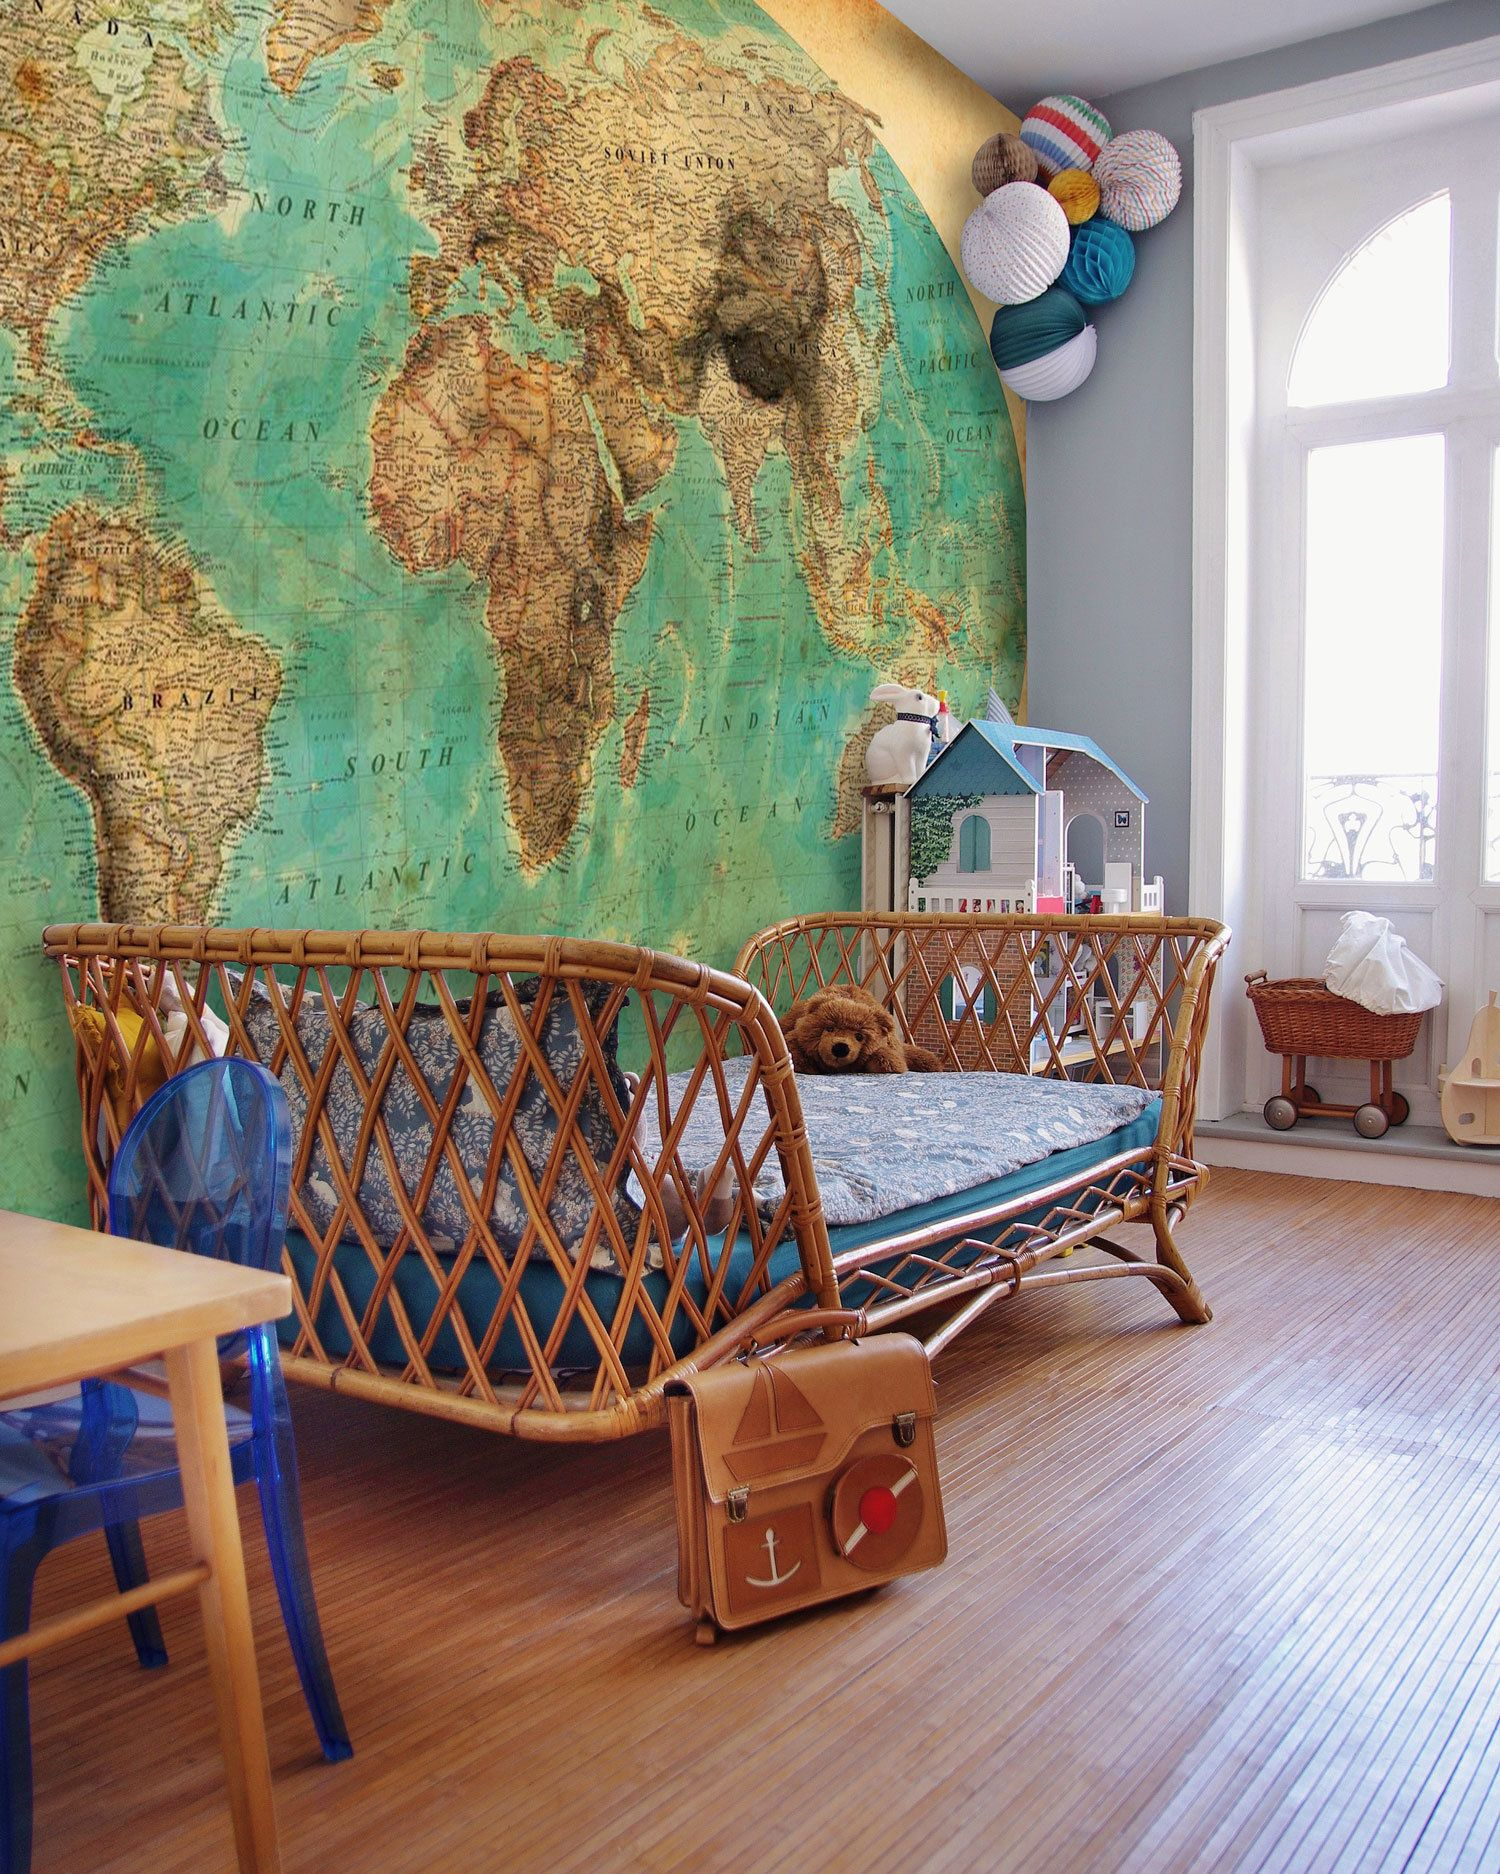 Vintage World Map Wallpaper, World Map in Teal and Brown